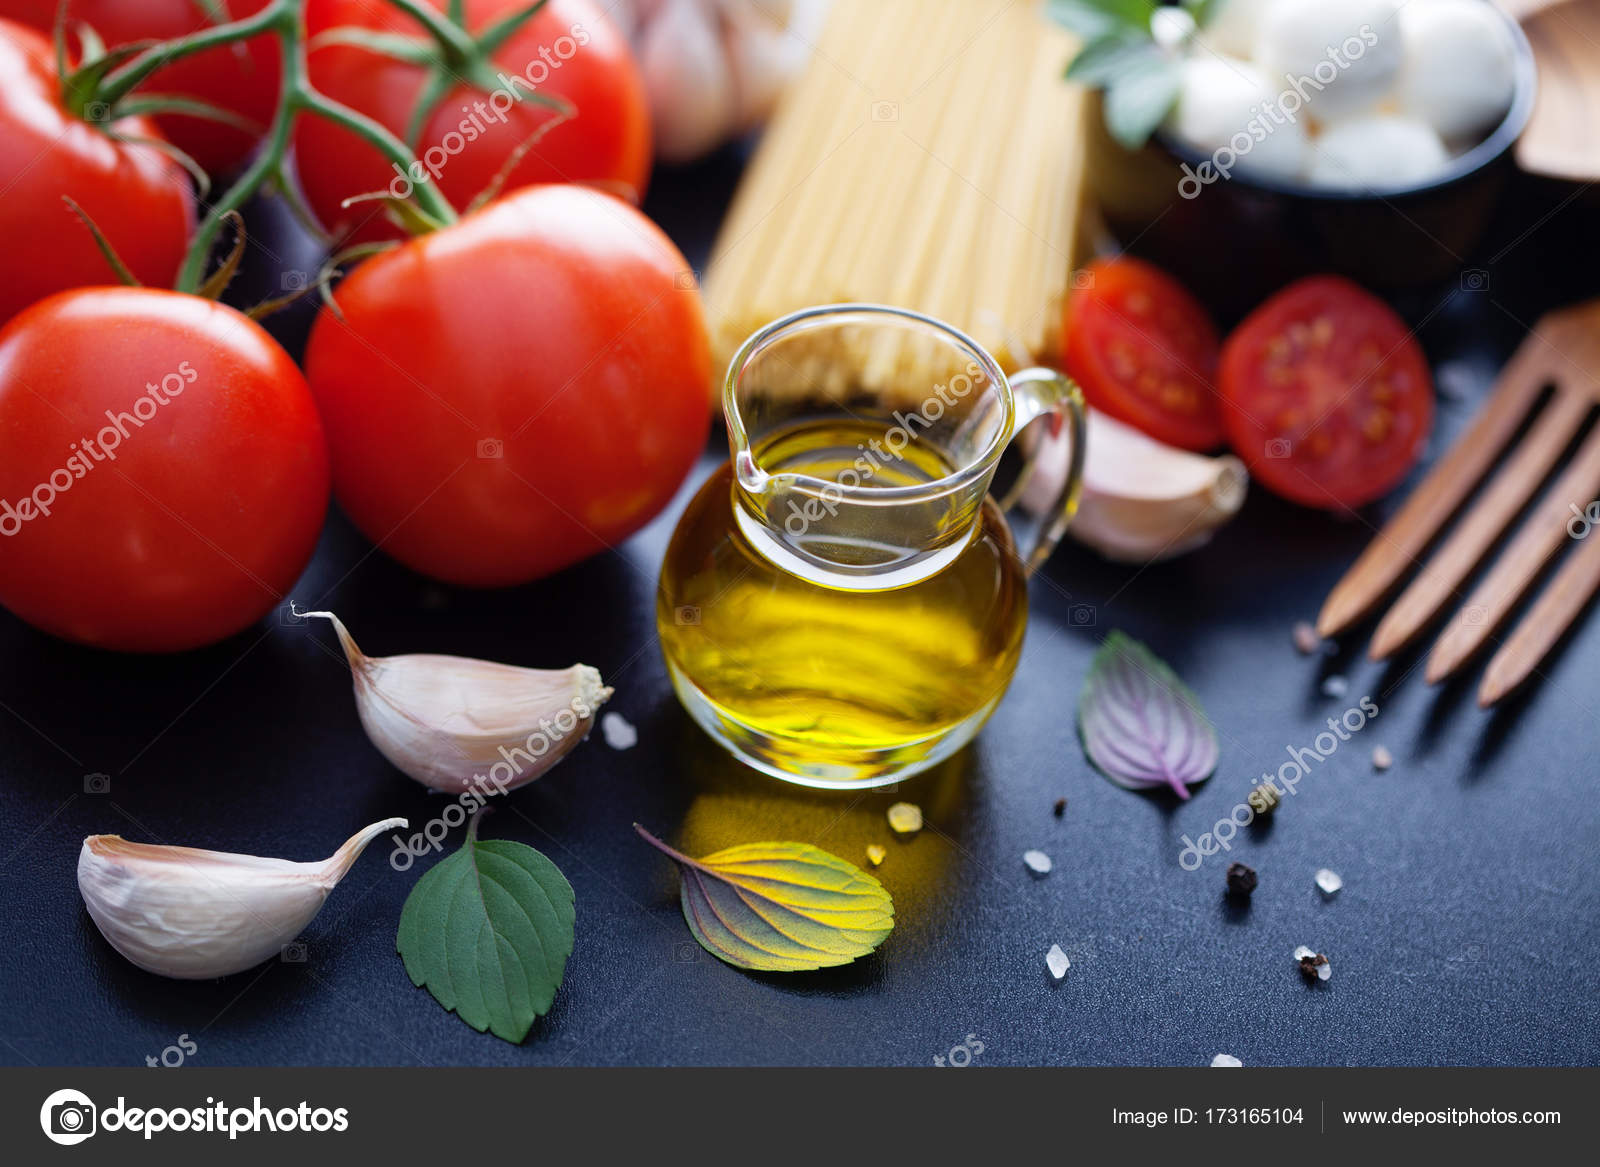 Cuisines Vial Vial With Olive Oil Stock Photo Matka Wariatka 173165104